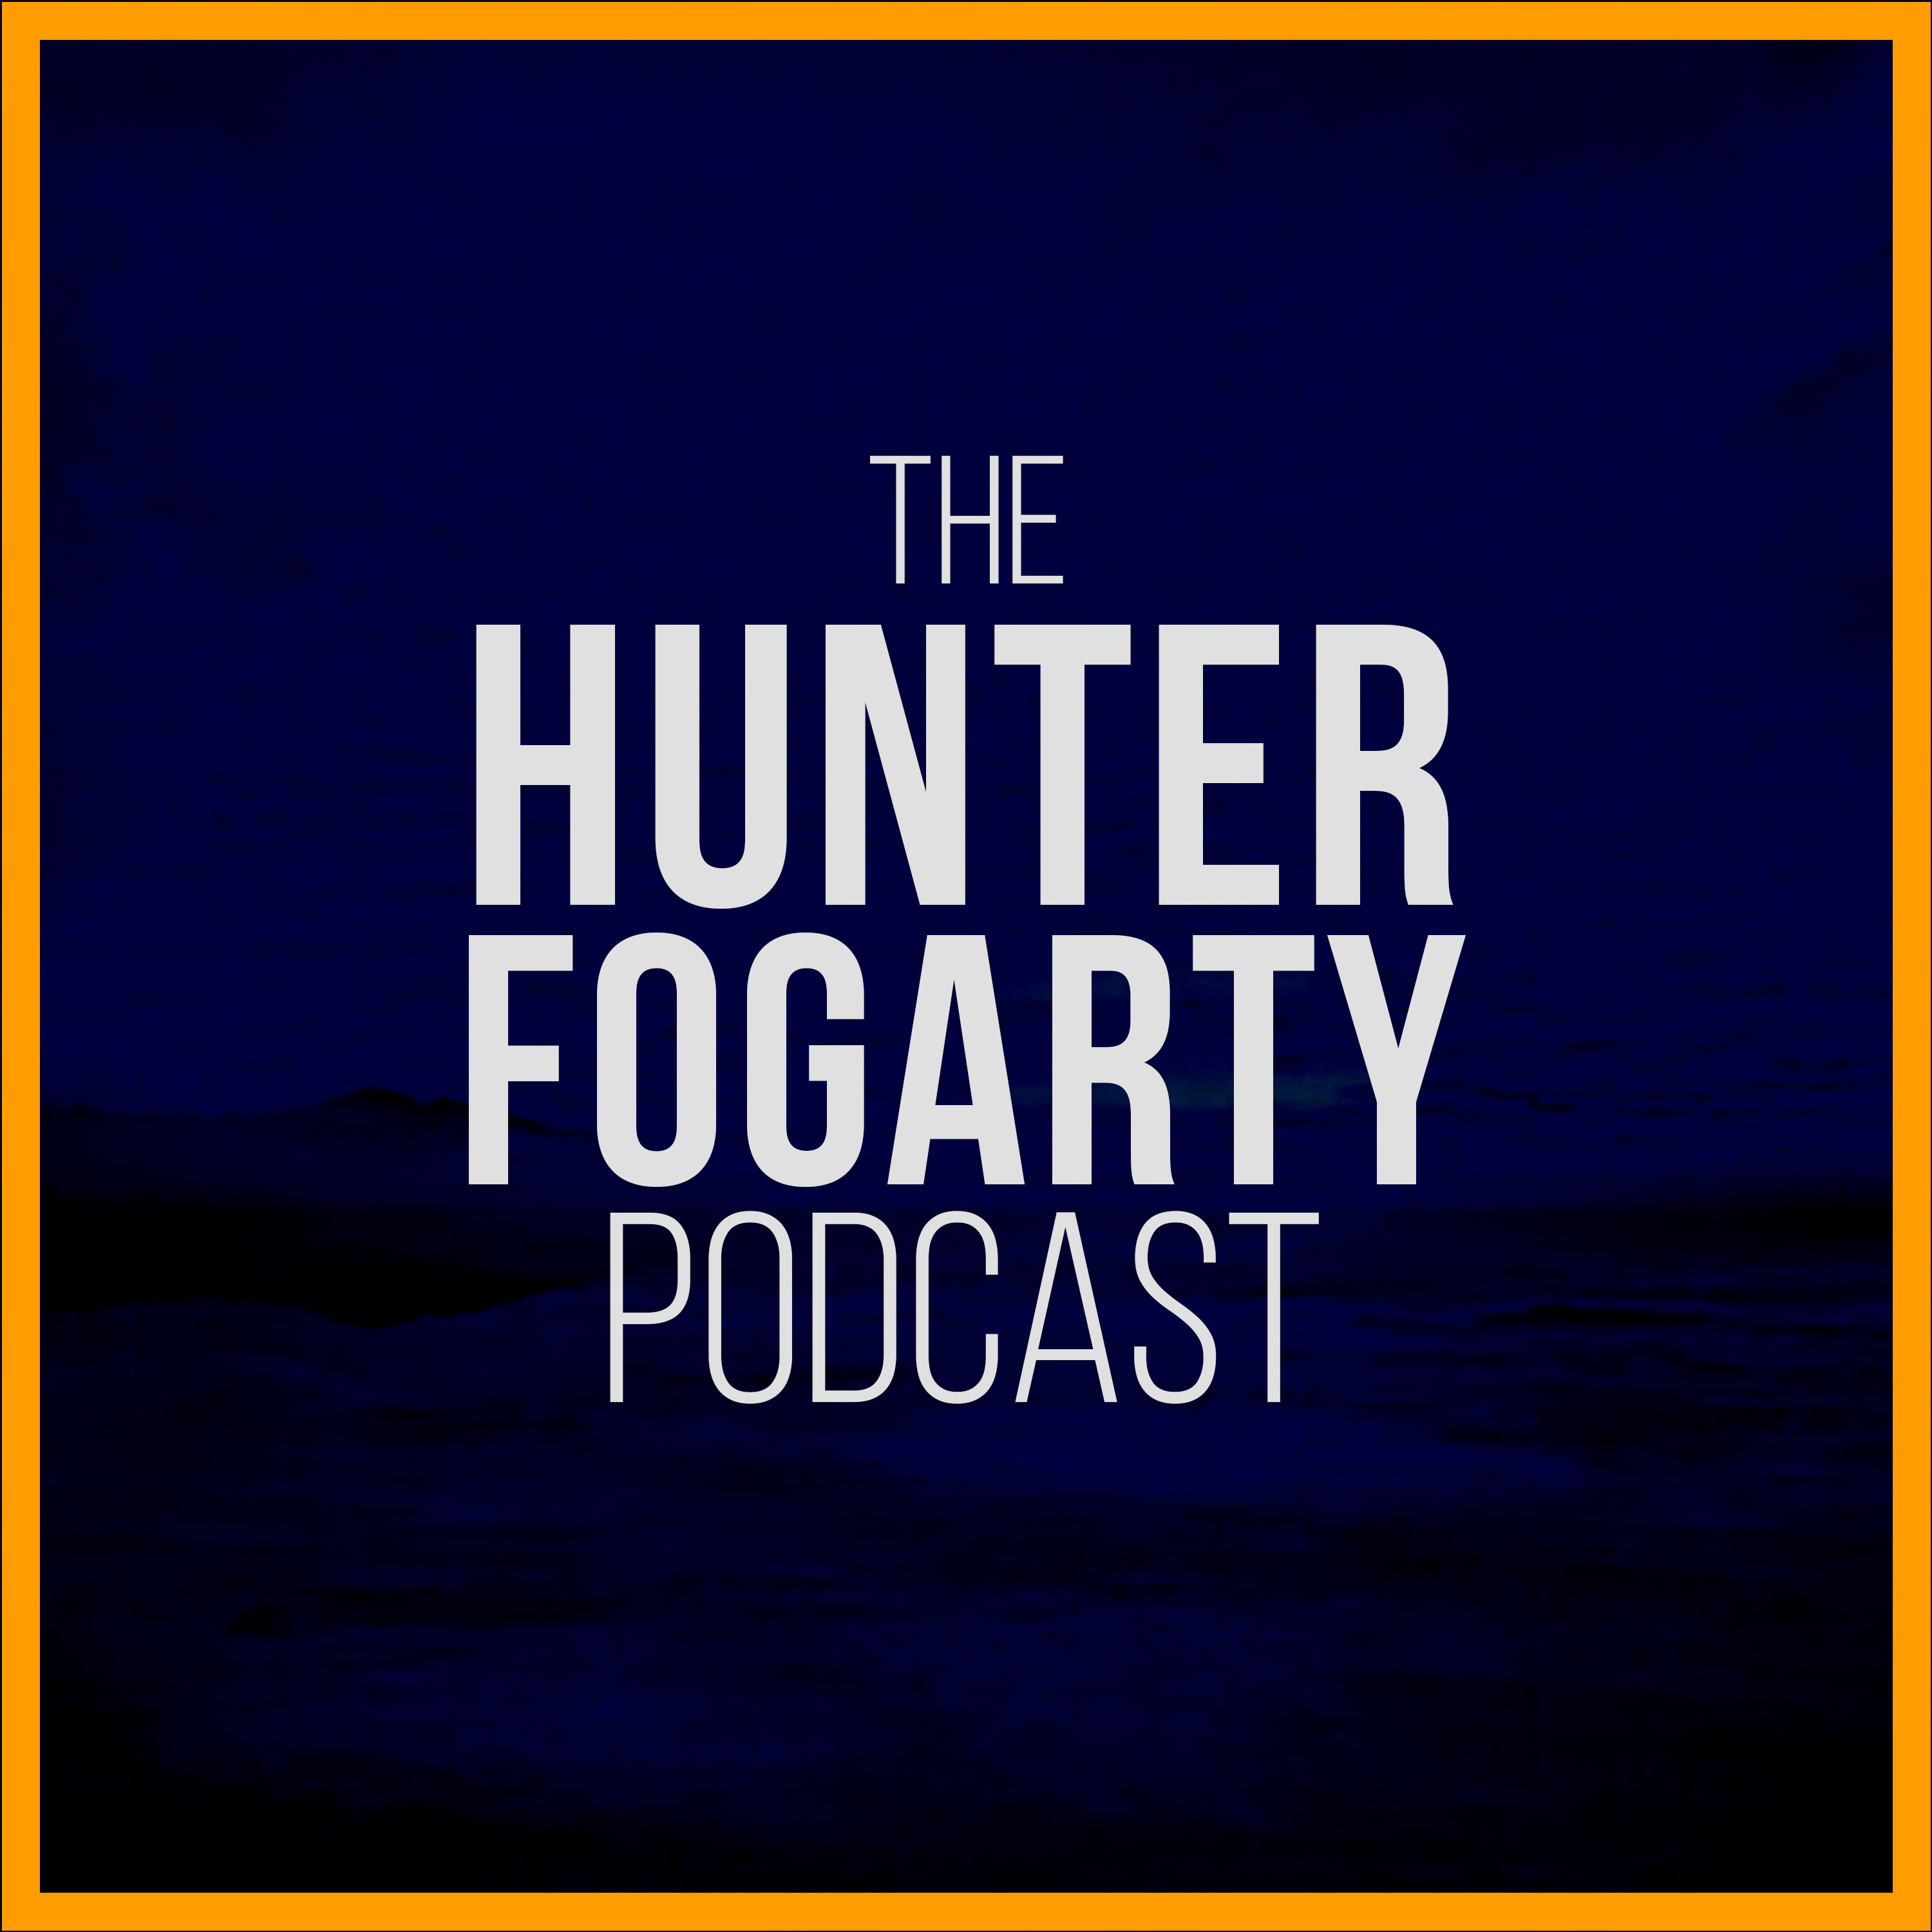 The Hunter Fogarty Podcast show image